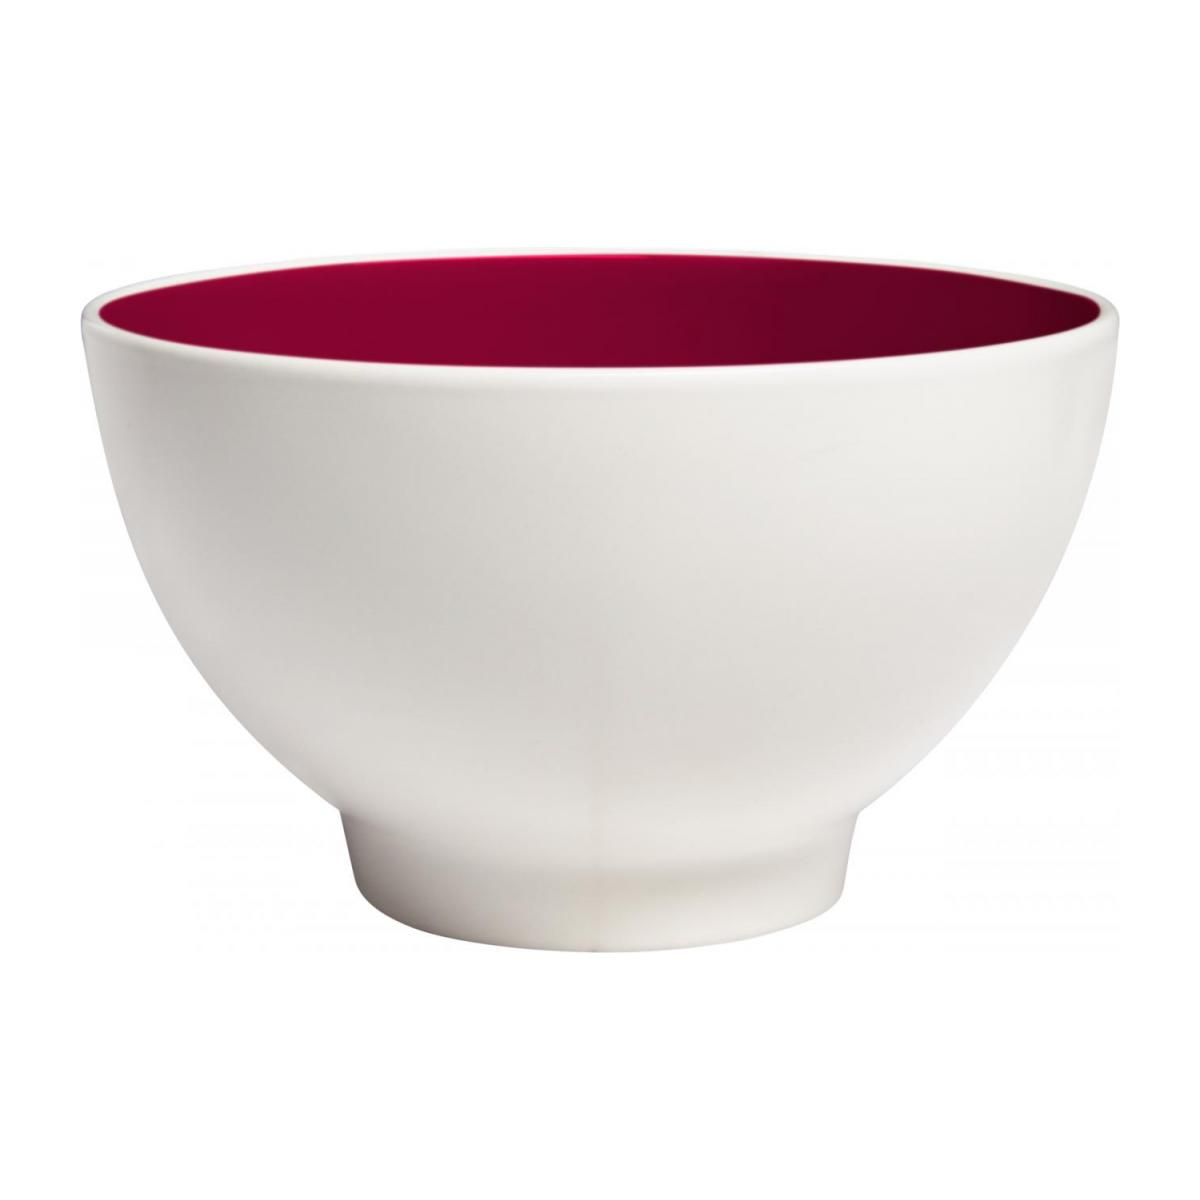 Bowl made of sandstone, white and burgundy n°1